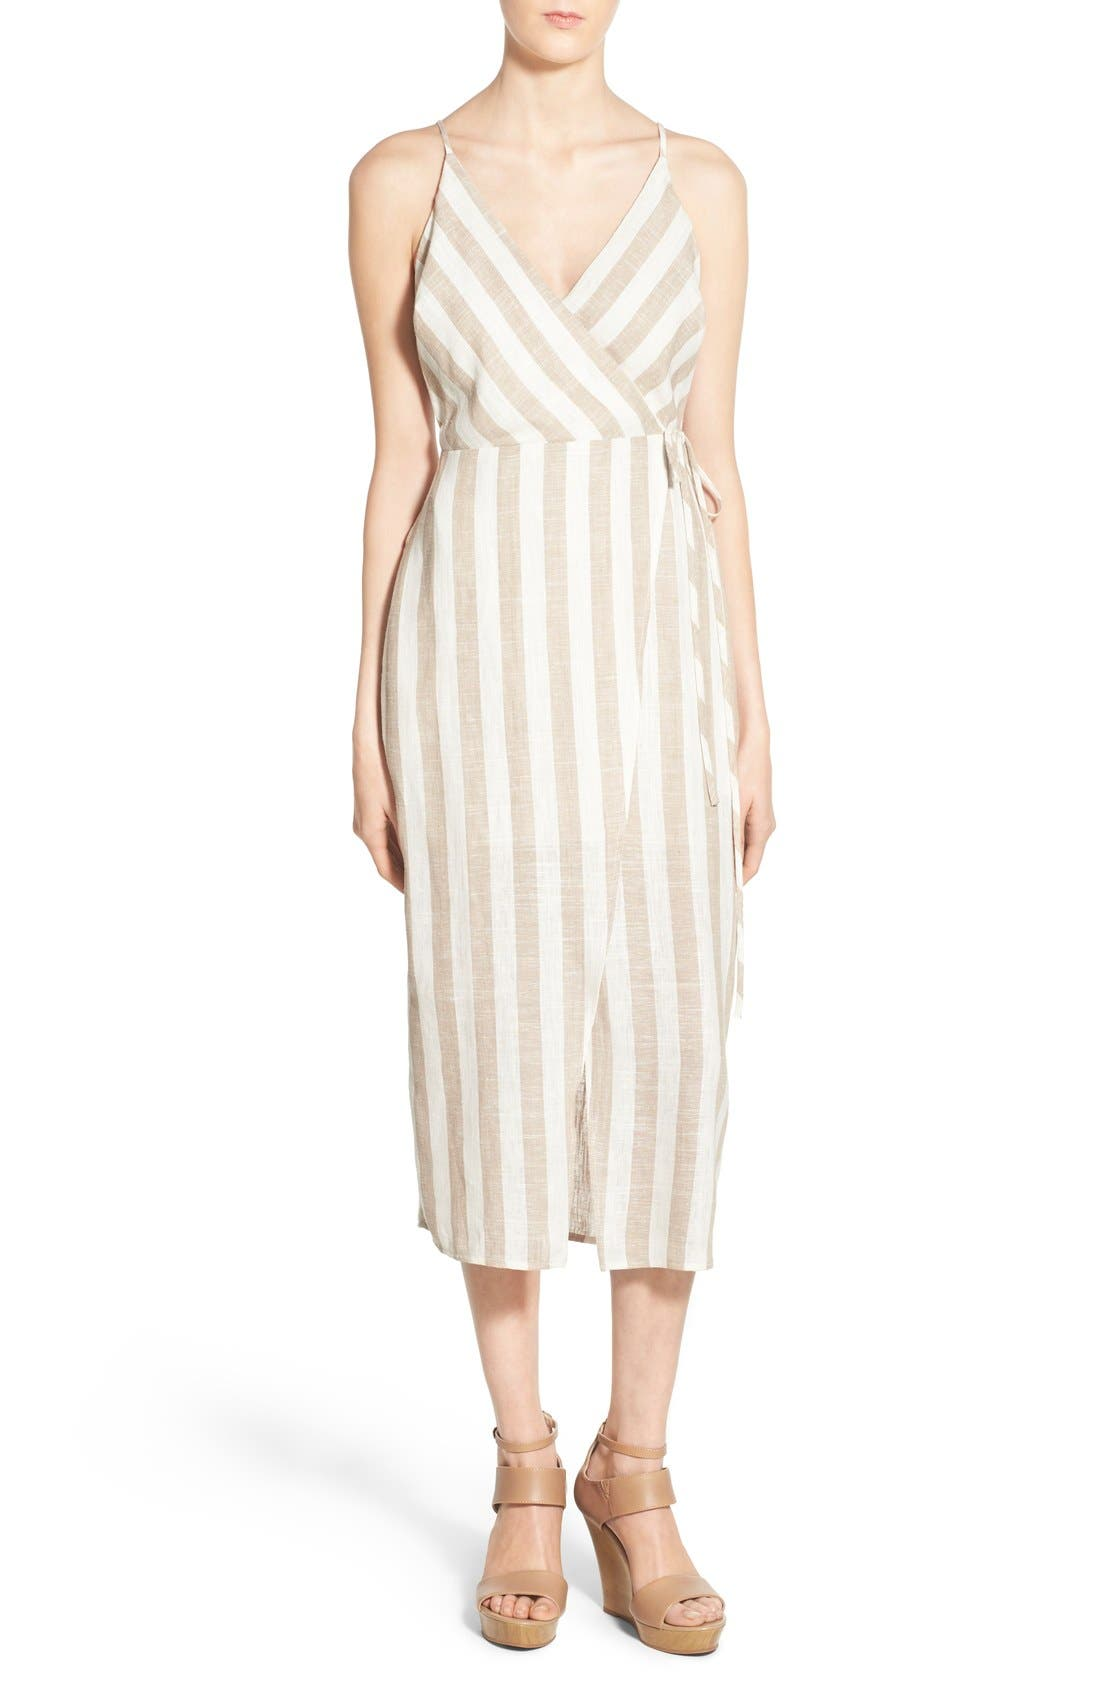 ASTR THE LABEL ASTR Linen Blend Wrap Dress, Main, color, 250